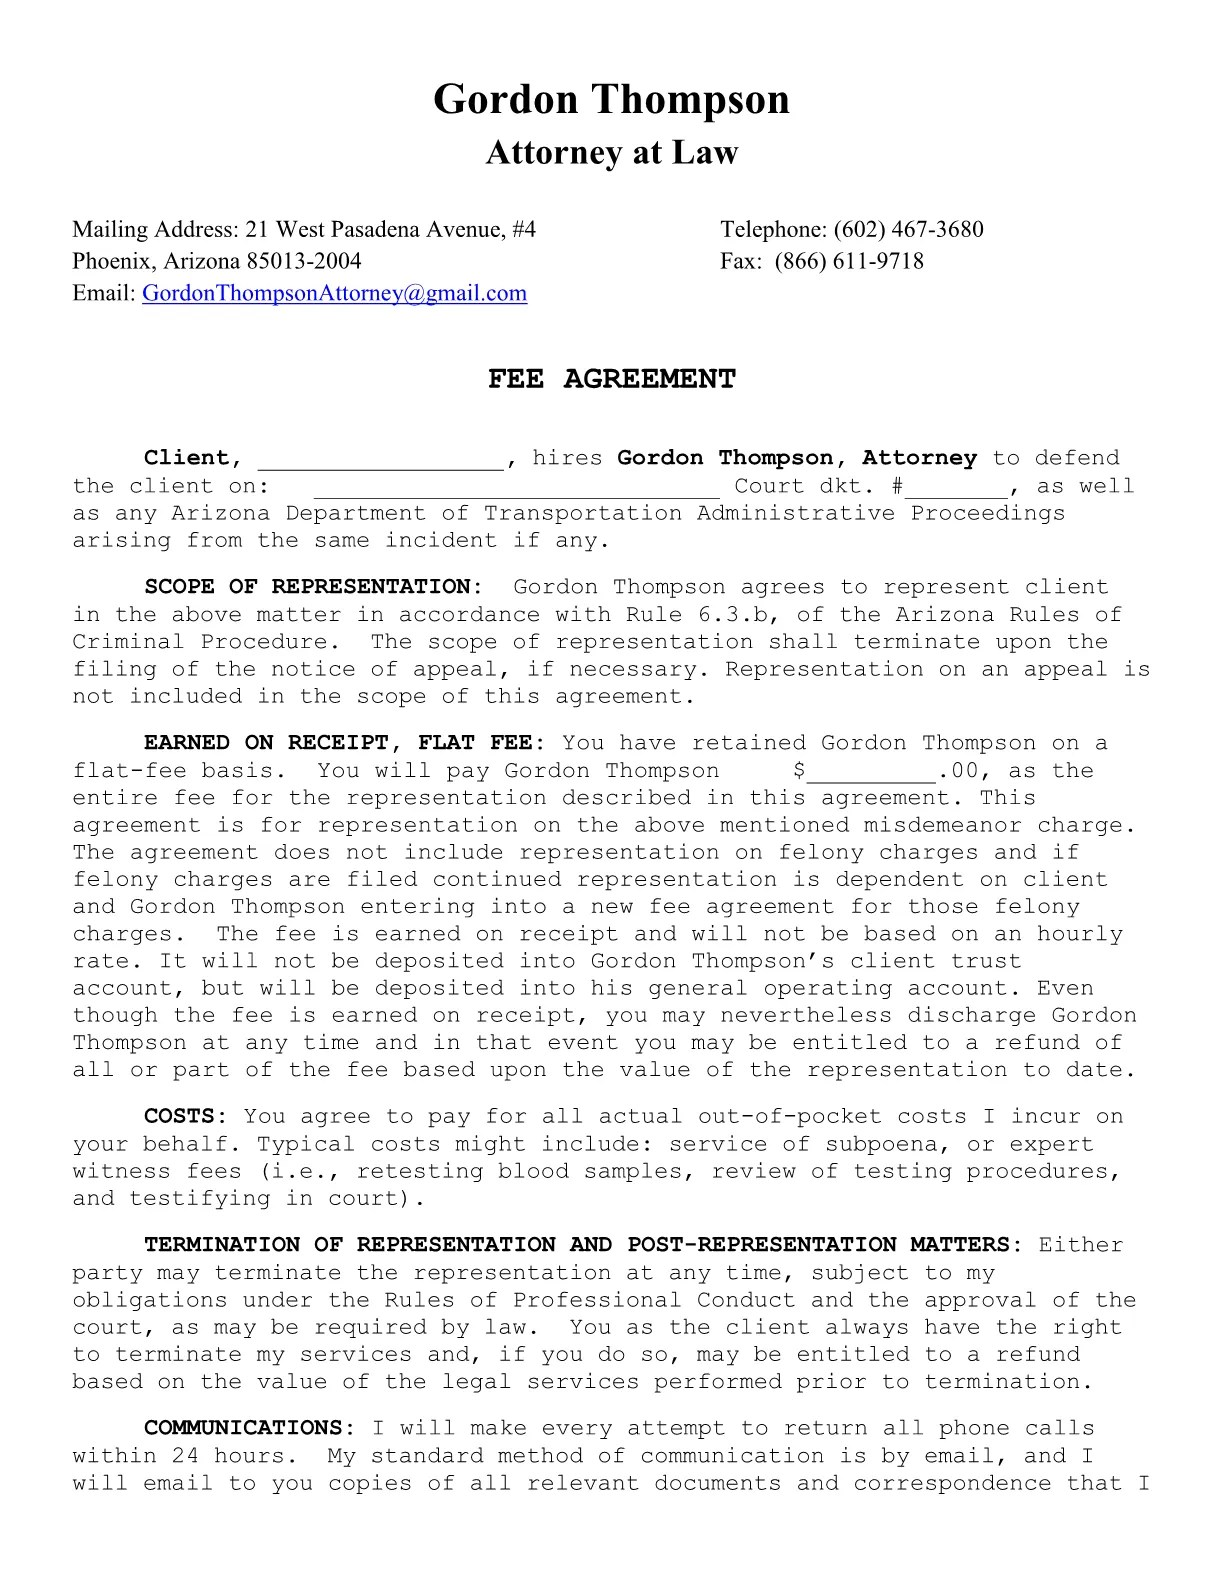 Retainer Agreement For Marketing Services – Sample Retainer Agreement Template